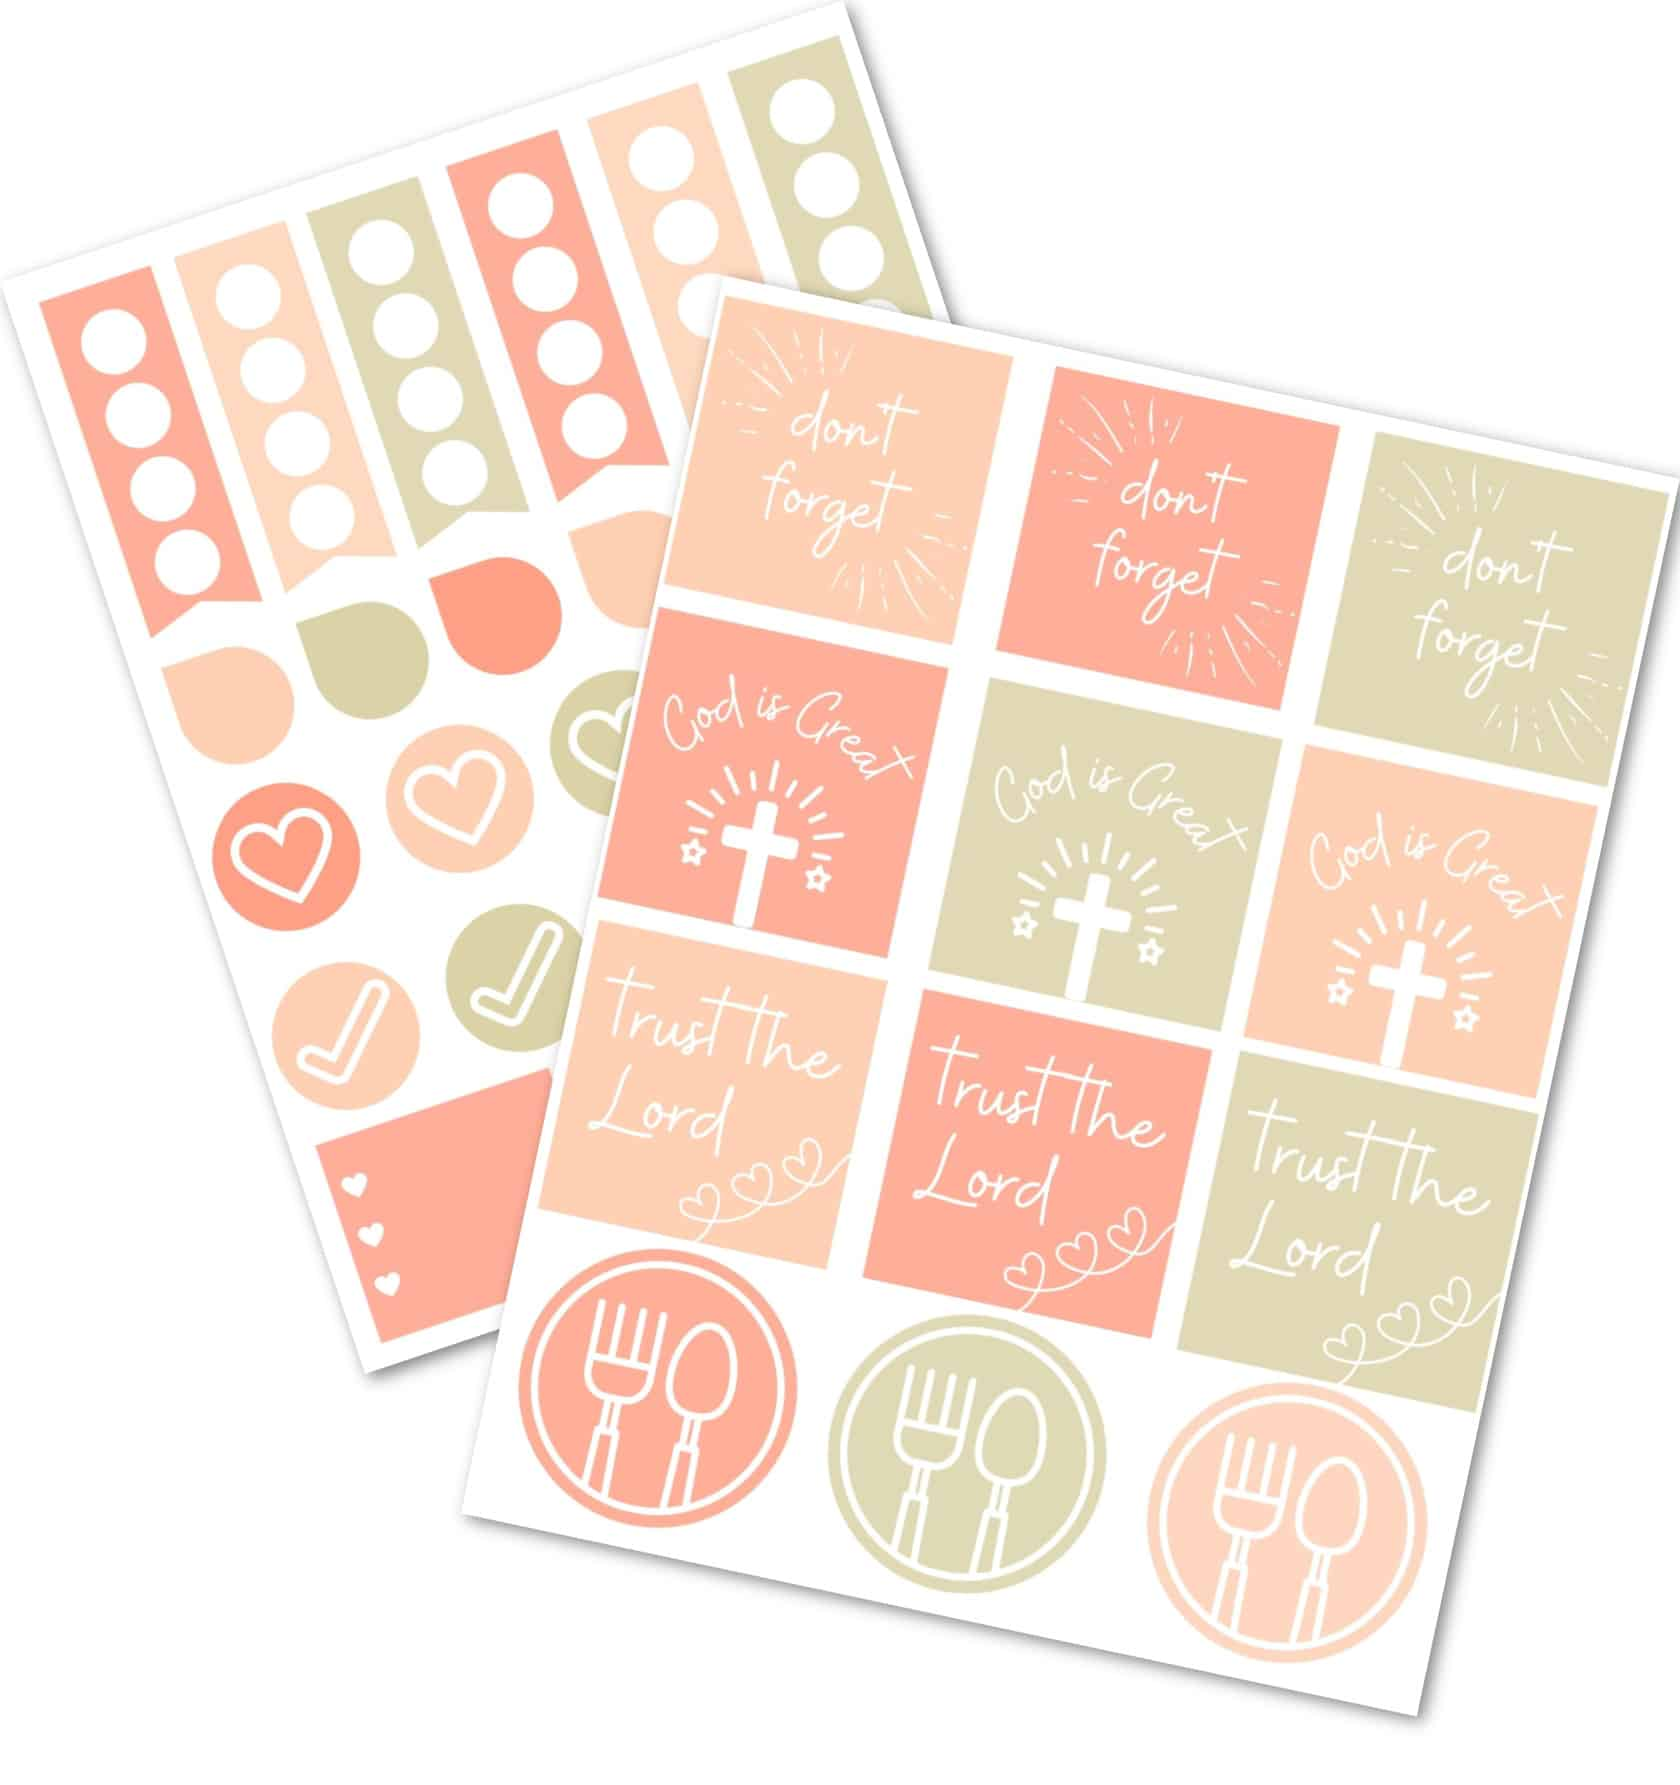 picture of the Abundant Life Planner Digital Stickers for Christian Women